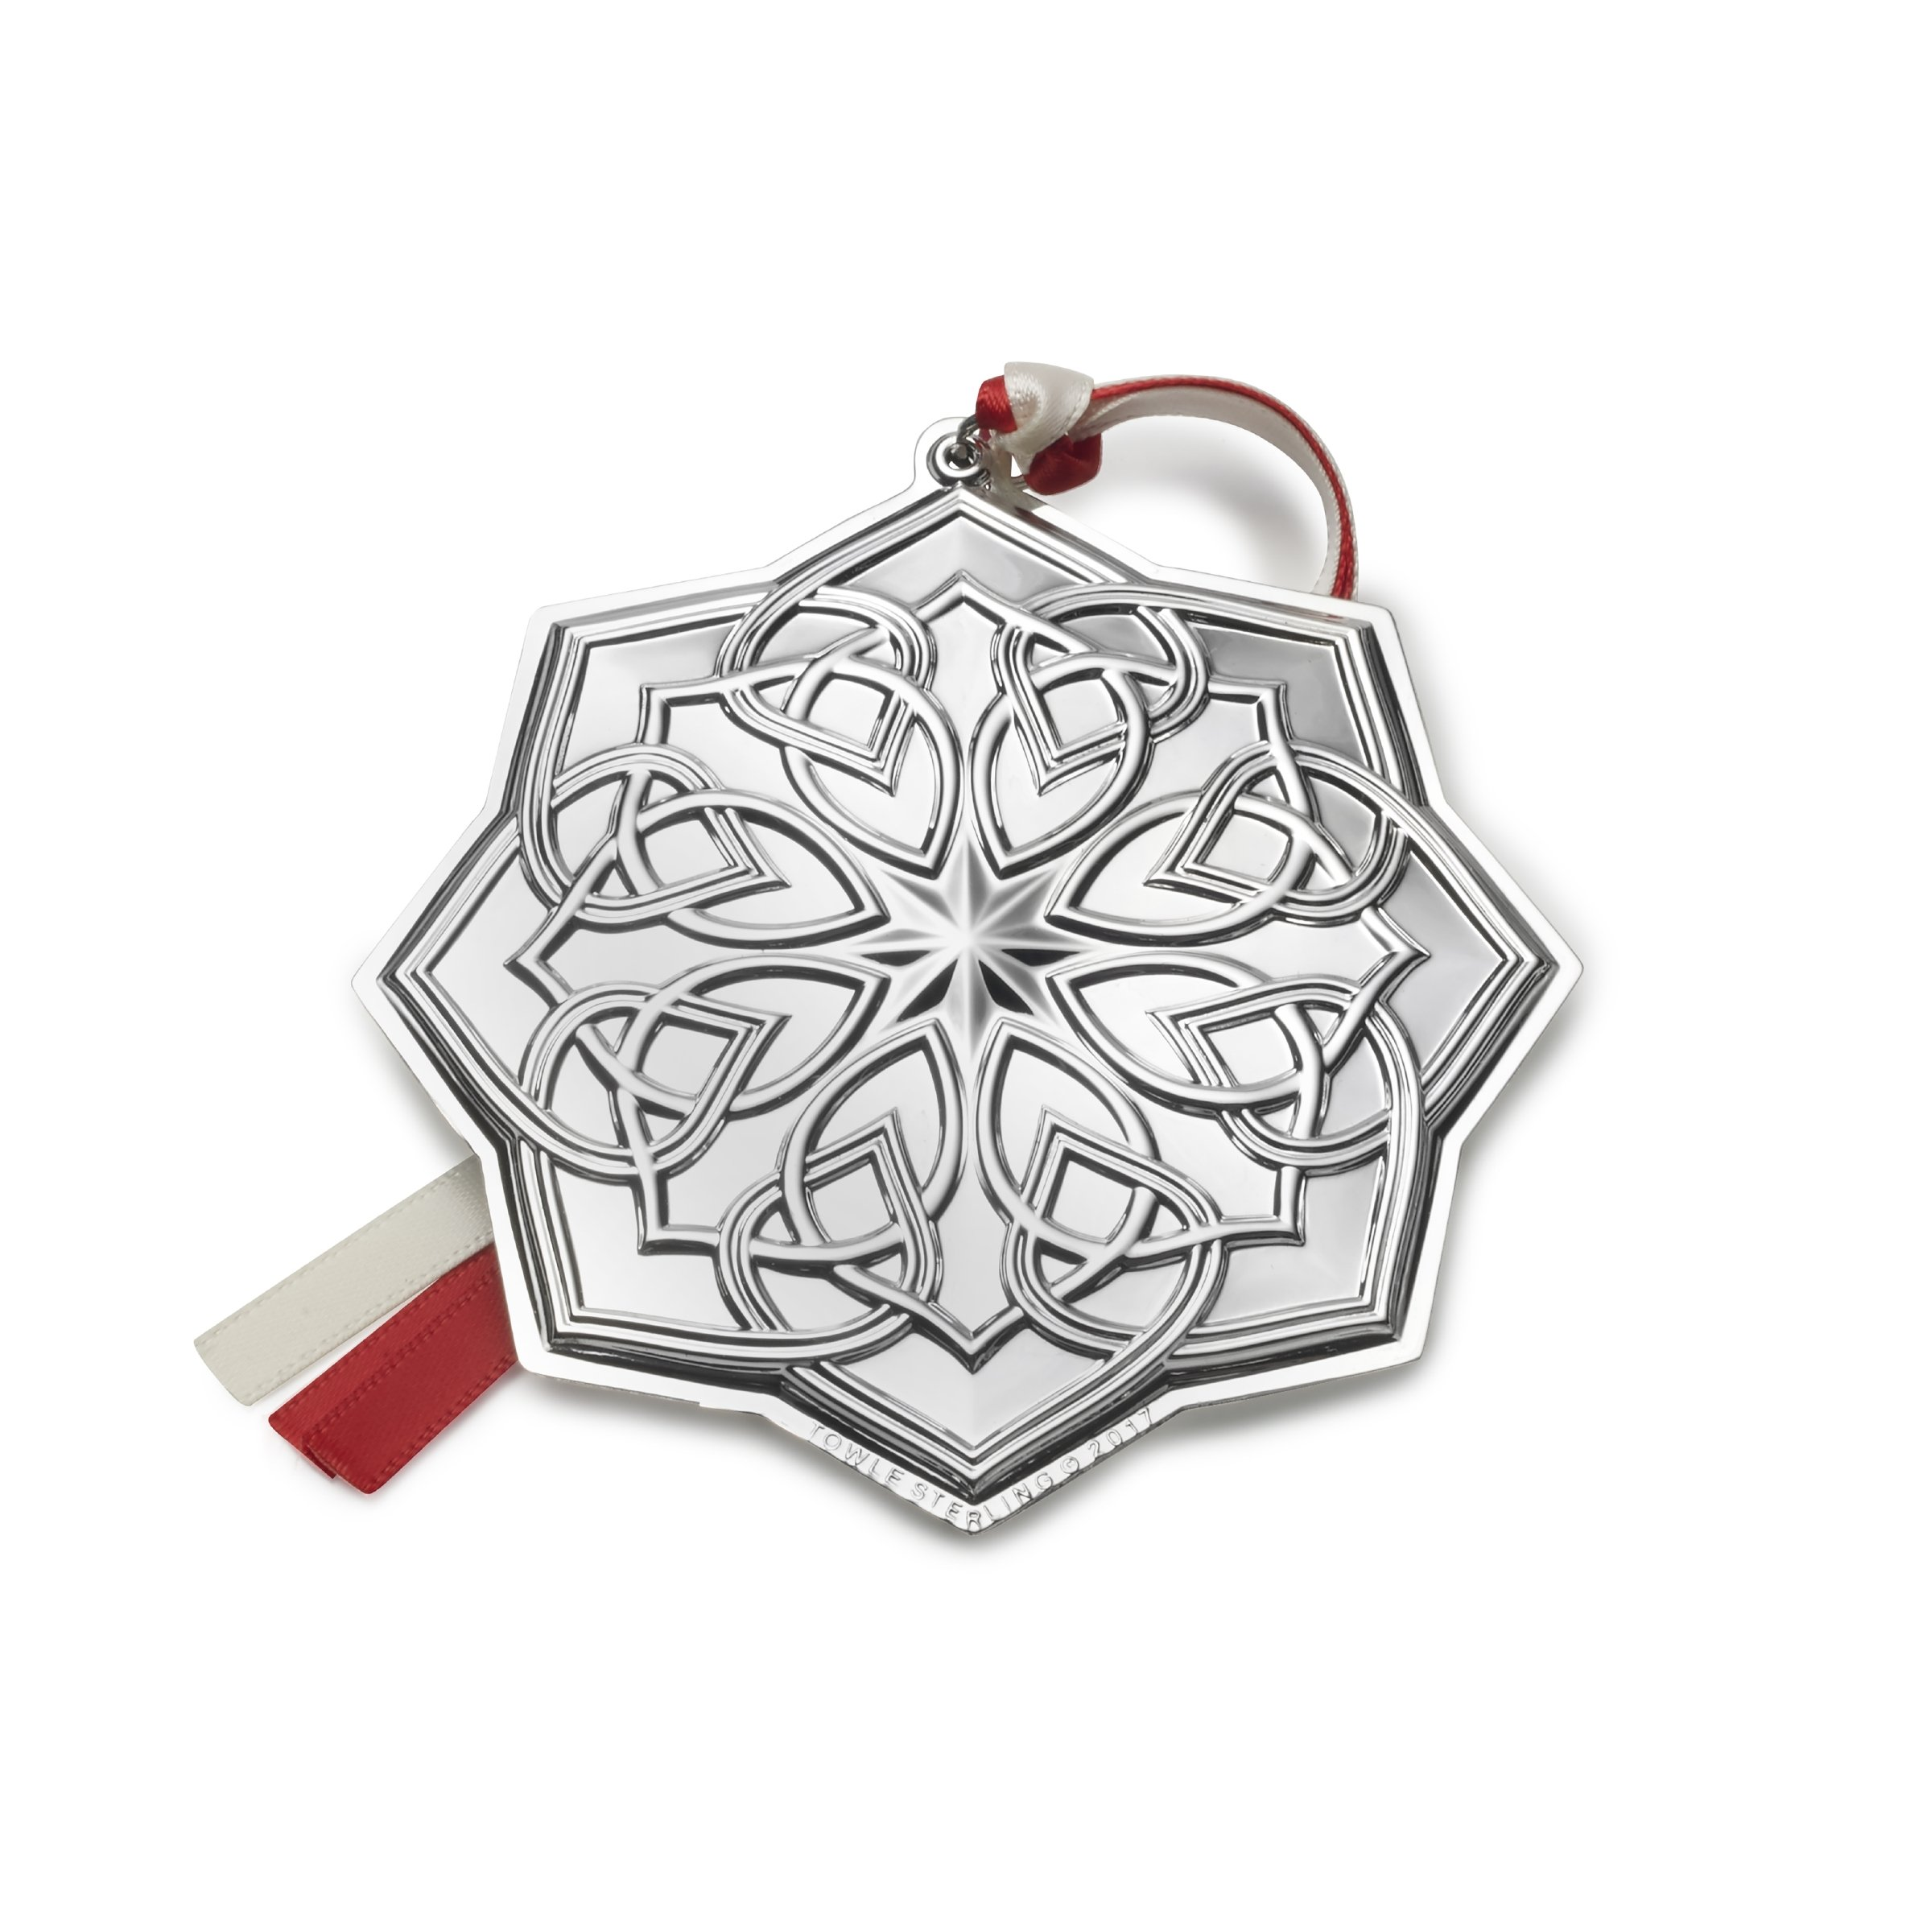 Towle 2017 Sterling Silver Celtic Ornament, 18th Edition by Towle